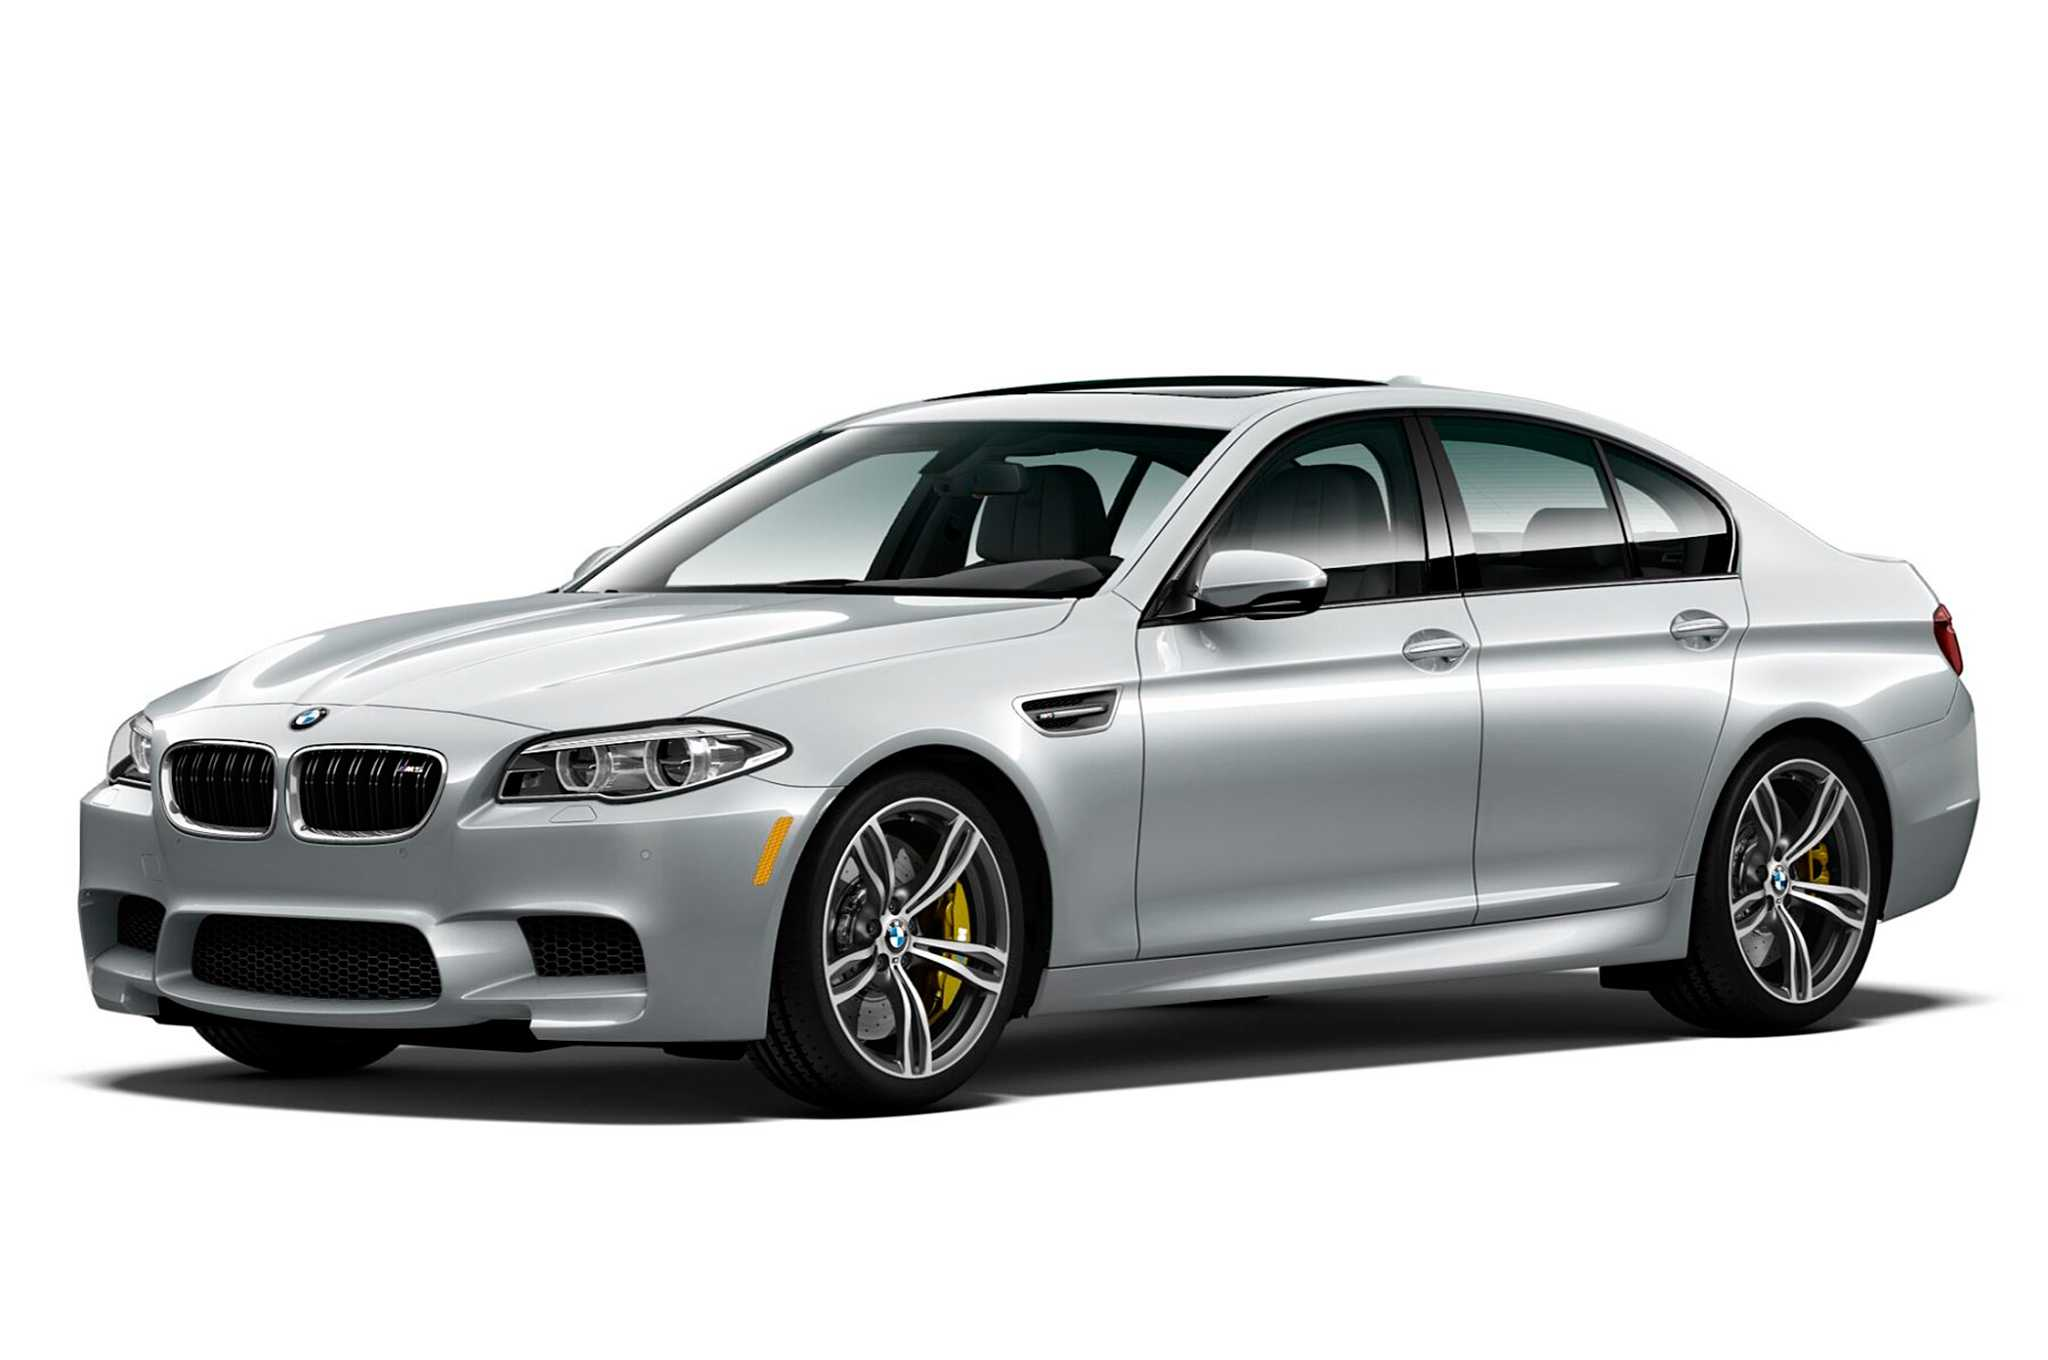 2016 BMW M5 Pure Metal Silver Edition Is Extremely Limited In Numbers